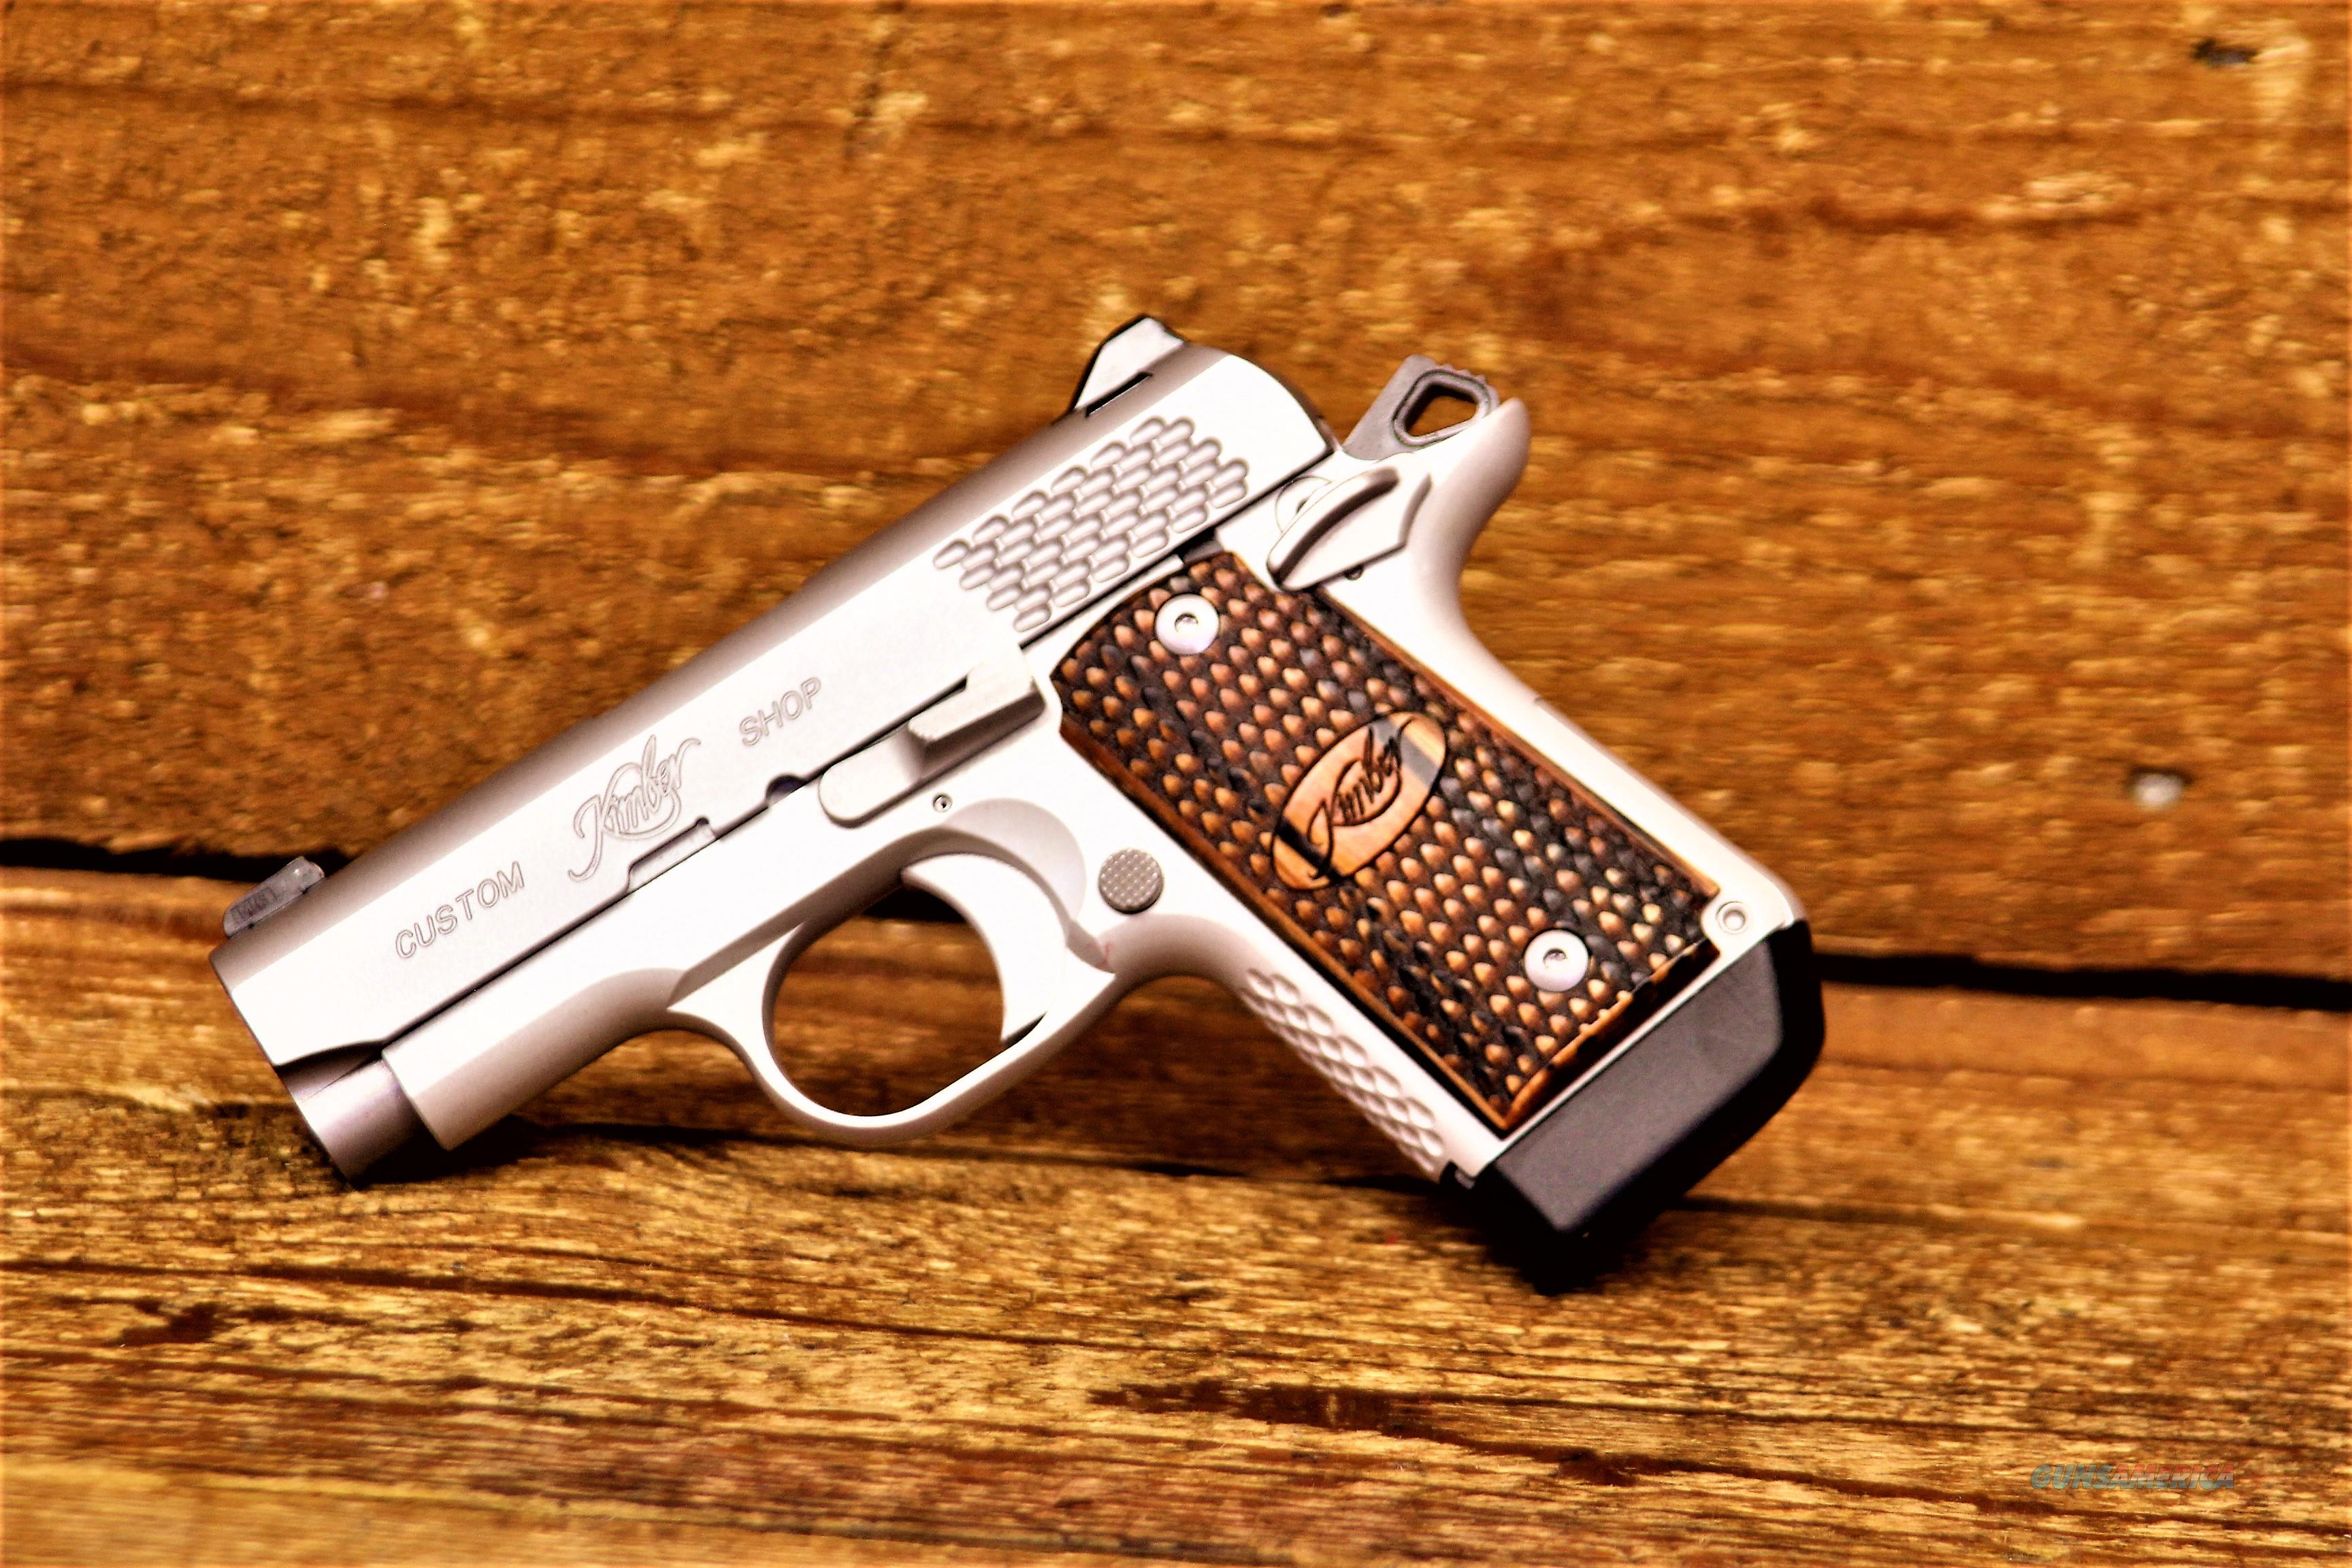 EASY PAY $75 DOWN LAYAWAY 12 MONTHLY PAYMENTS KIMBER Concealed CARRY Micro 9 Raptor Stainless 9mm KIM3300109 669278331096  Guns > Pistols > Kimber of America Pistols > Micro 9